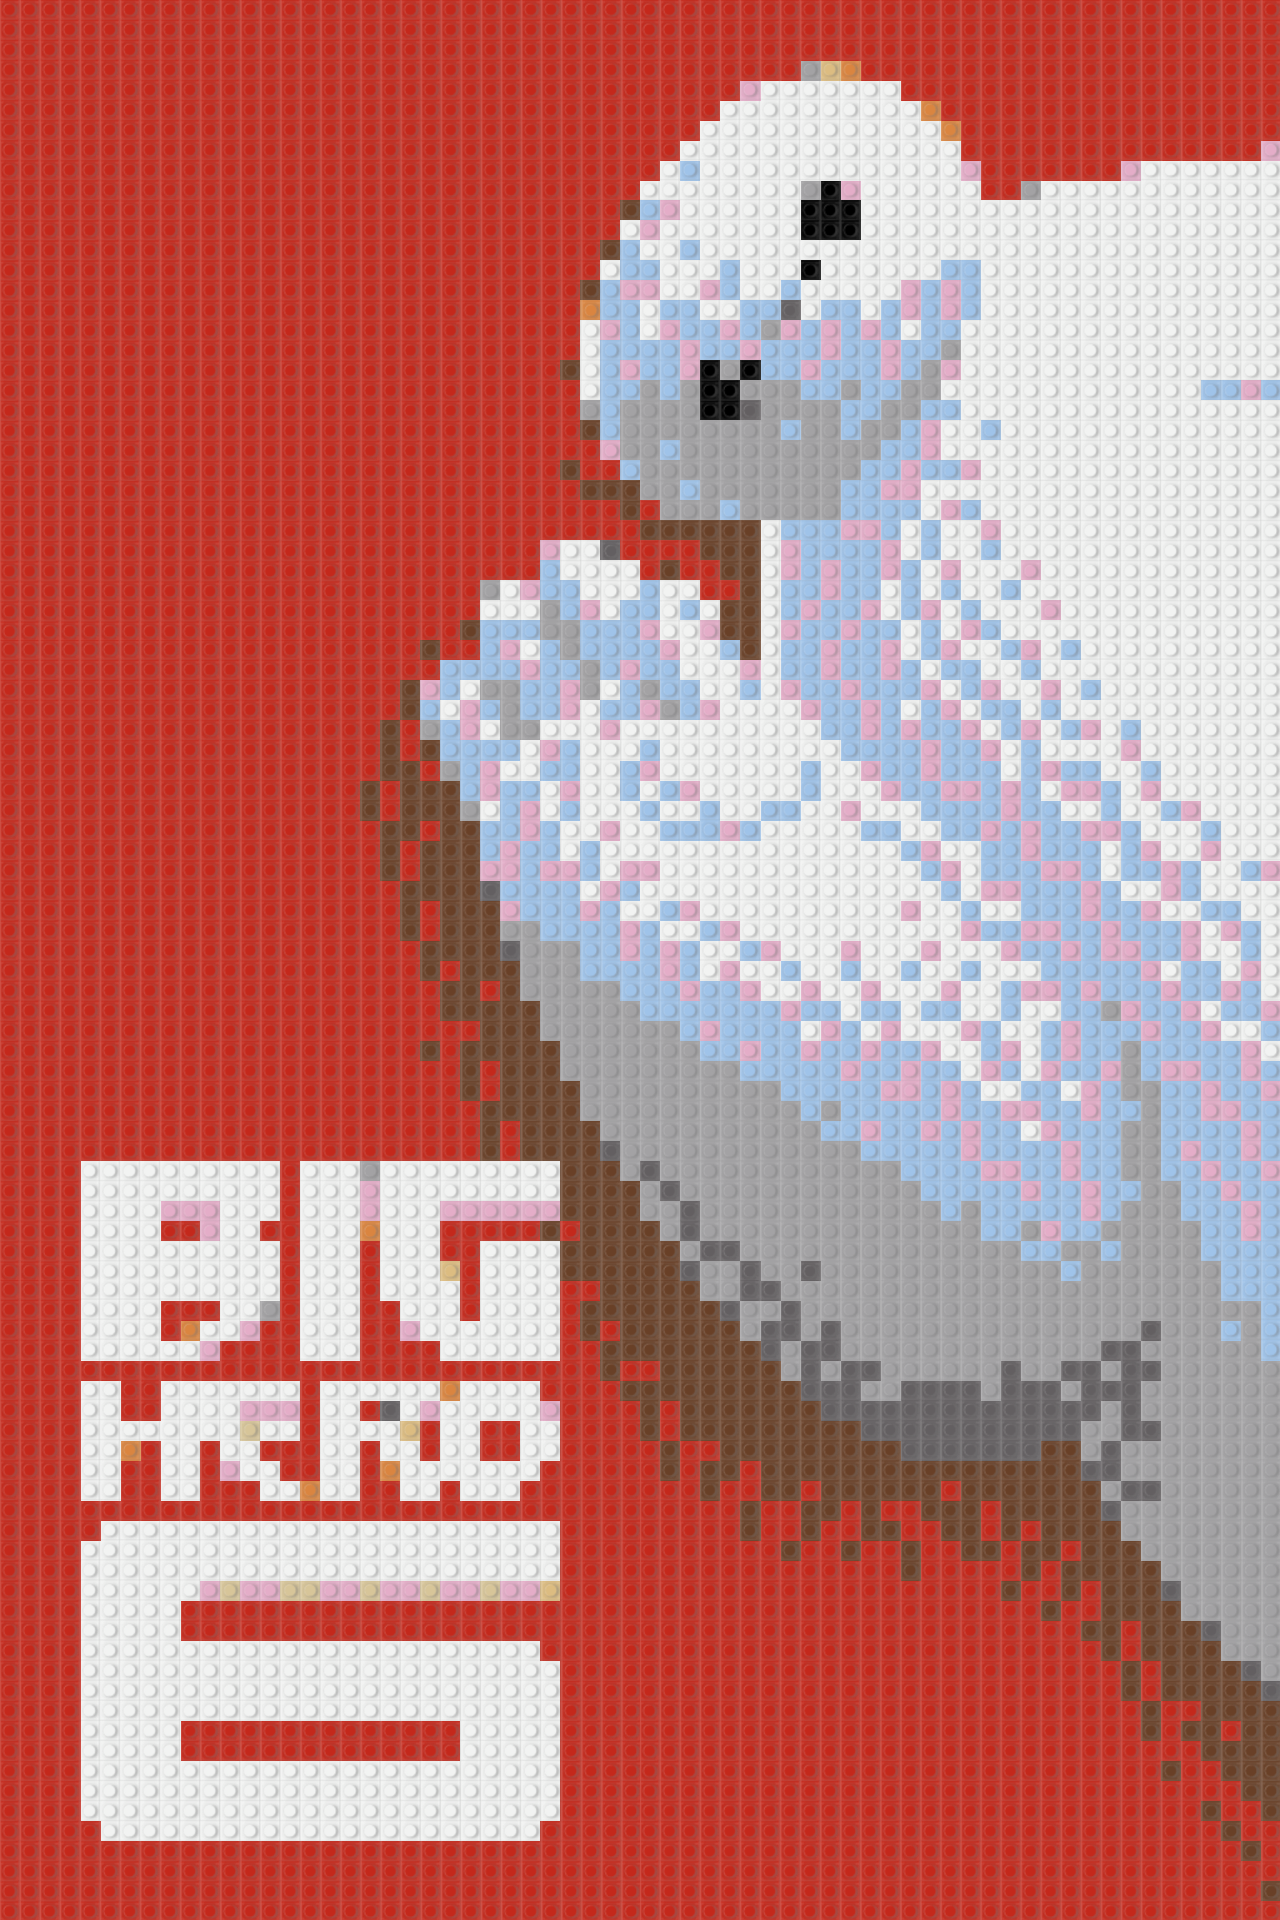 Baymax transparent background ppt. Big hero pecxel load